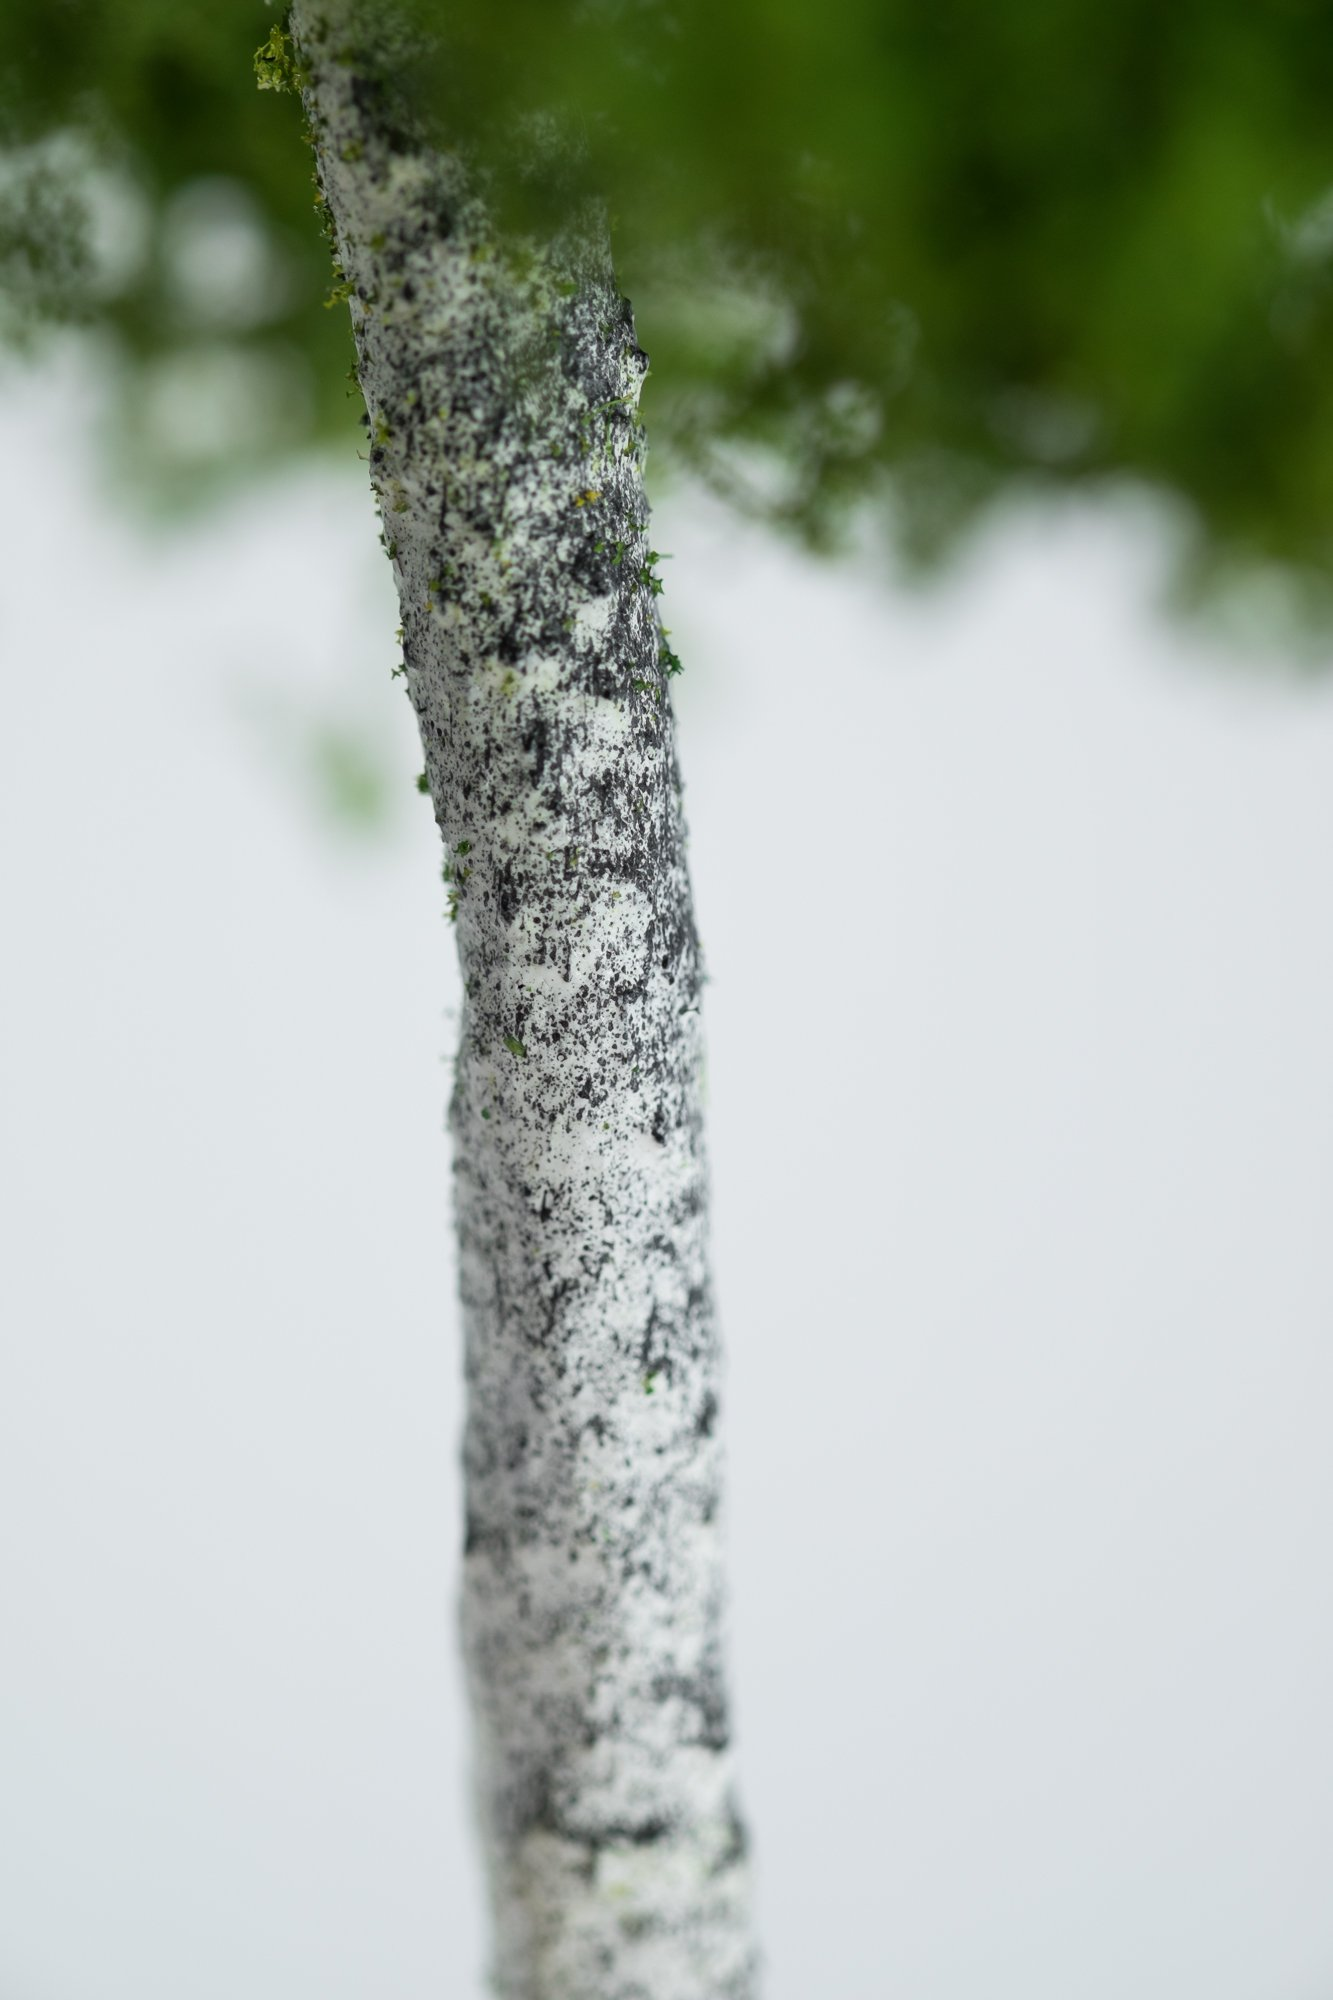 Trunk closeup of birch tree model. Made from high quality model supplies by Primo Models.